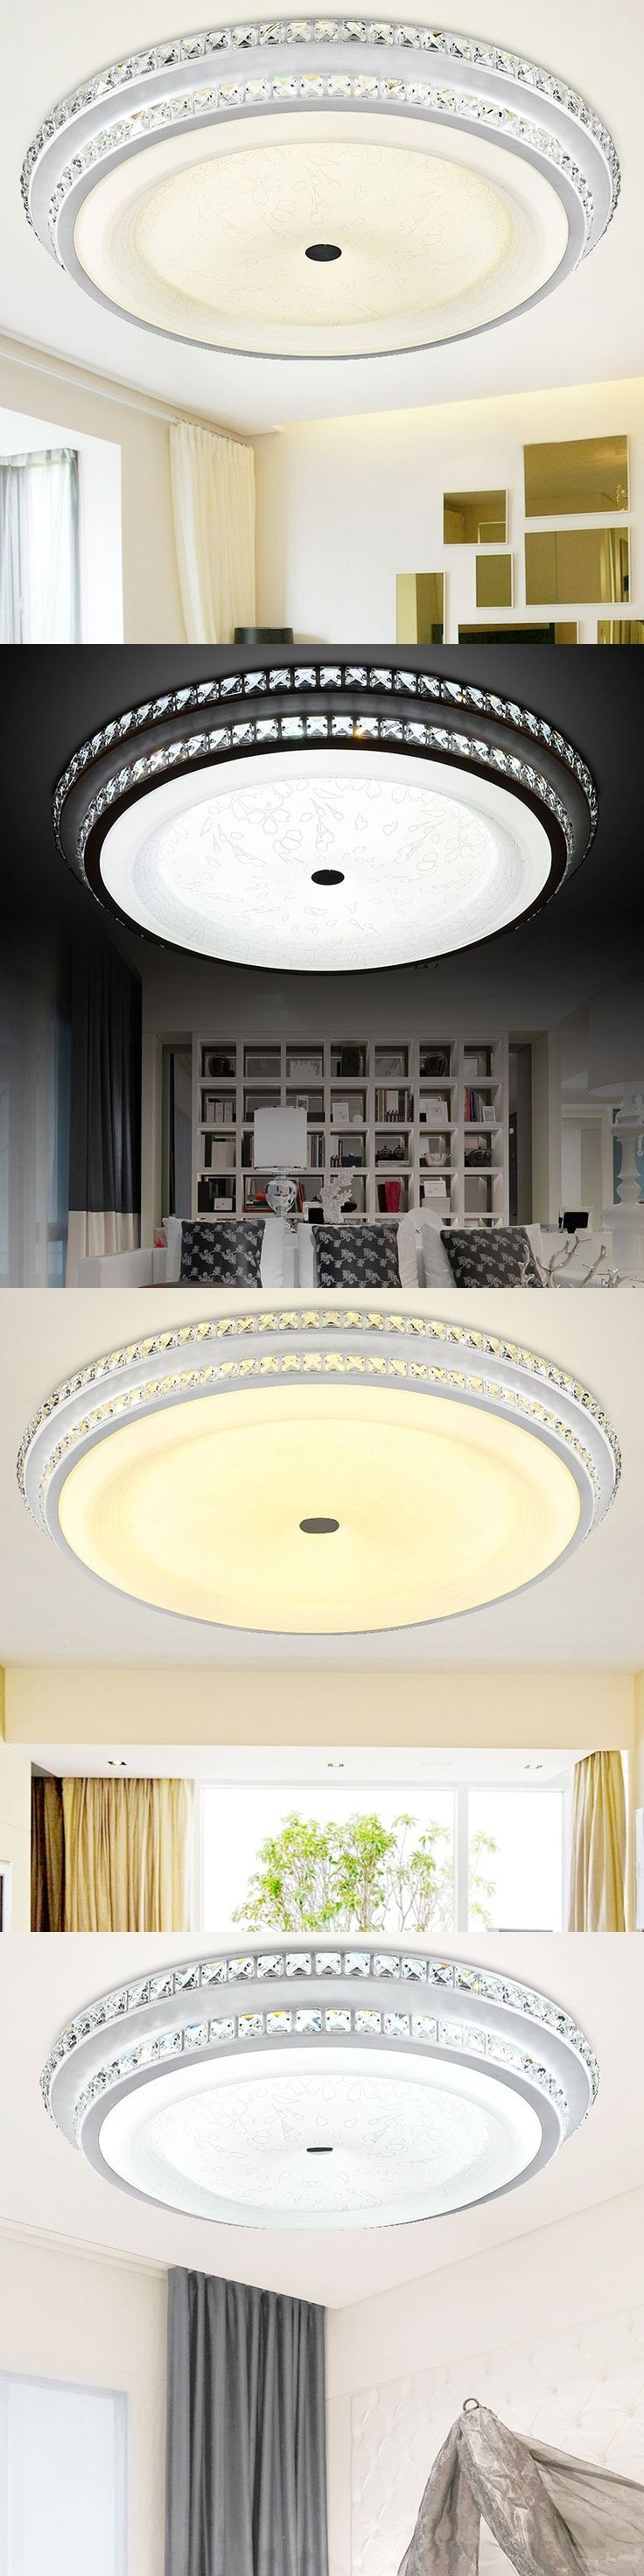 535 best Lamp Plafond images on Pinterest